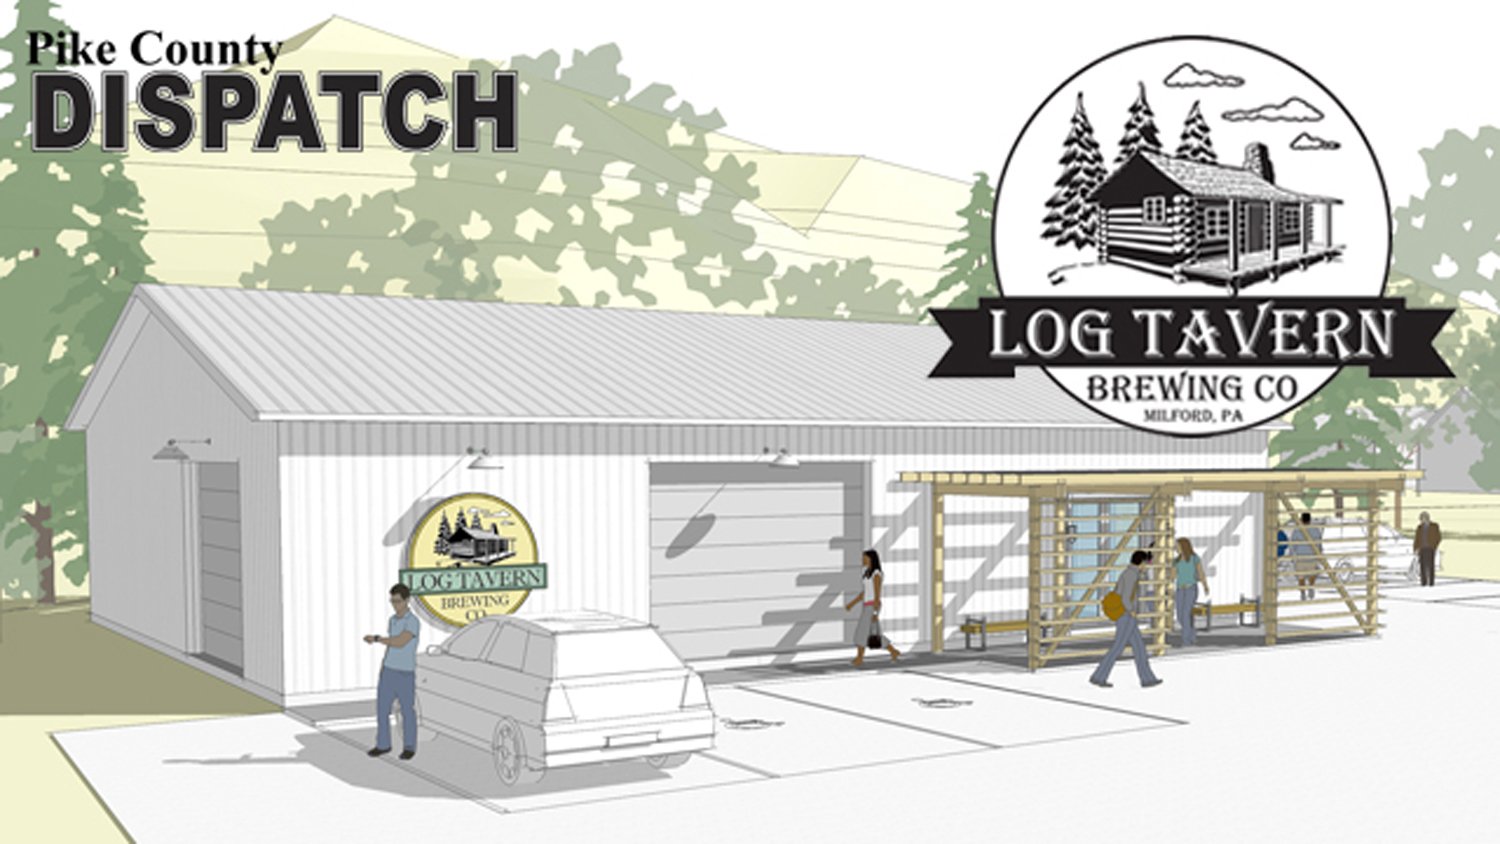 Log Tavern Brewery Pike County Dispatch